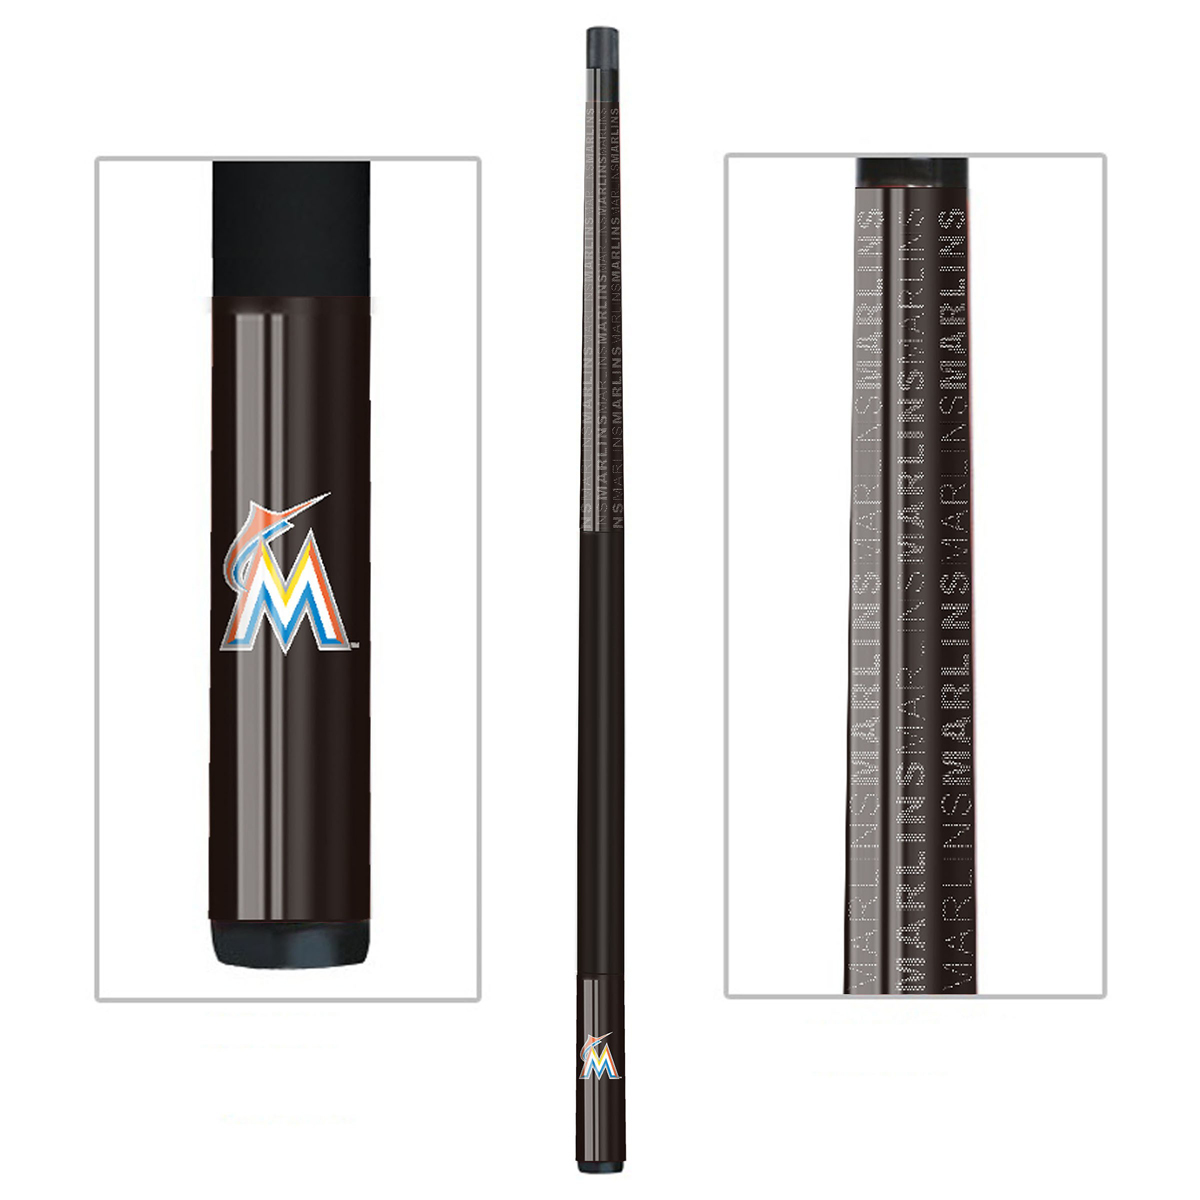 SKU# IMP__259-2024 Your Price: $175.00 Add to build an order Add to compare Miami Marlins Billiard Cue MIAMI MARLINS BILLIARD CUE